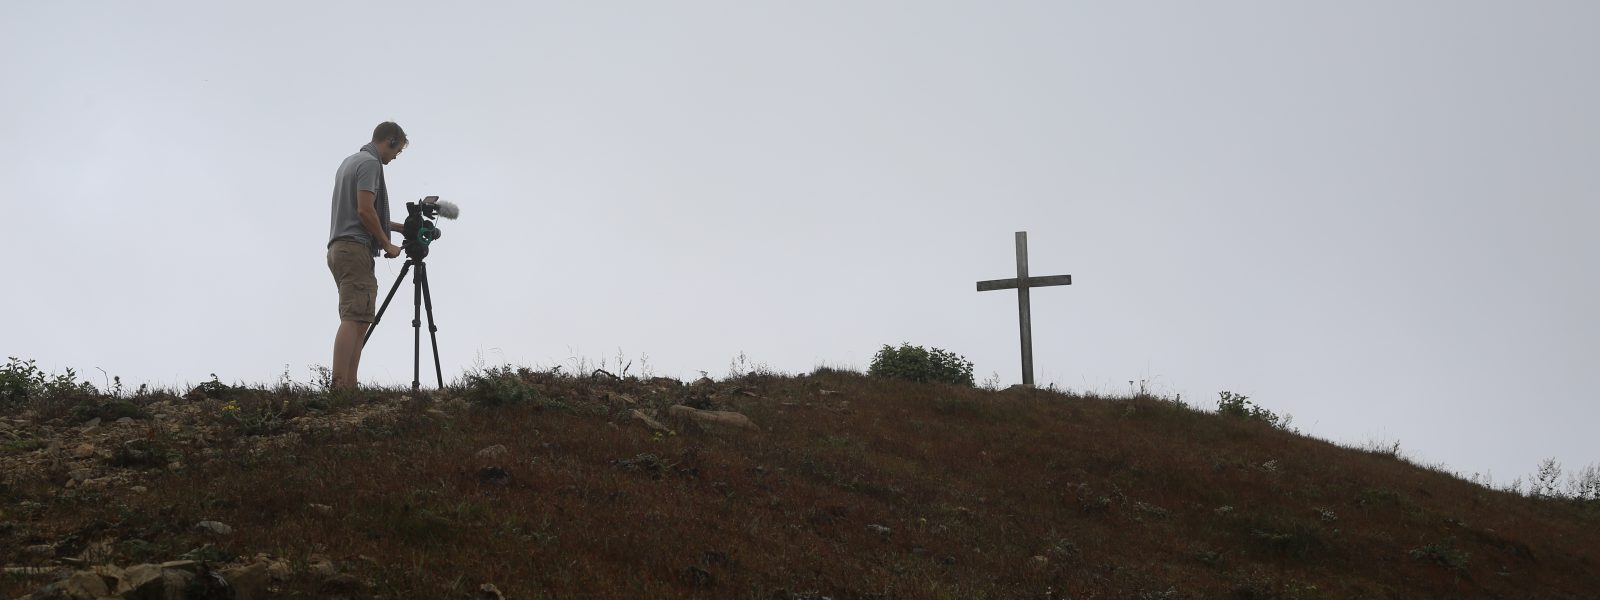 Introducing Forgotten Allies - Luke on hill with crucifix - Myanmar - Sampan Travel